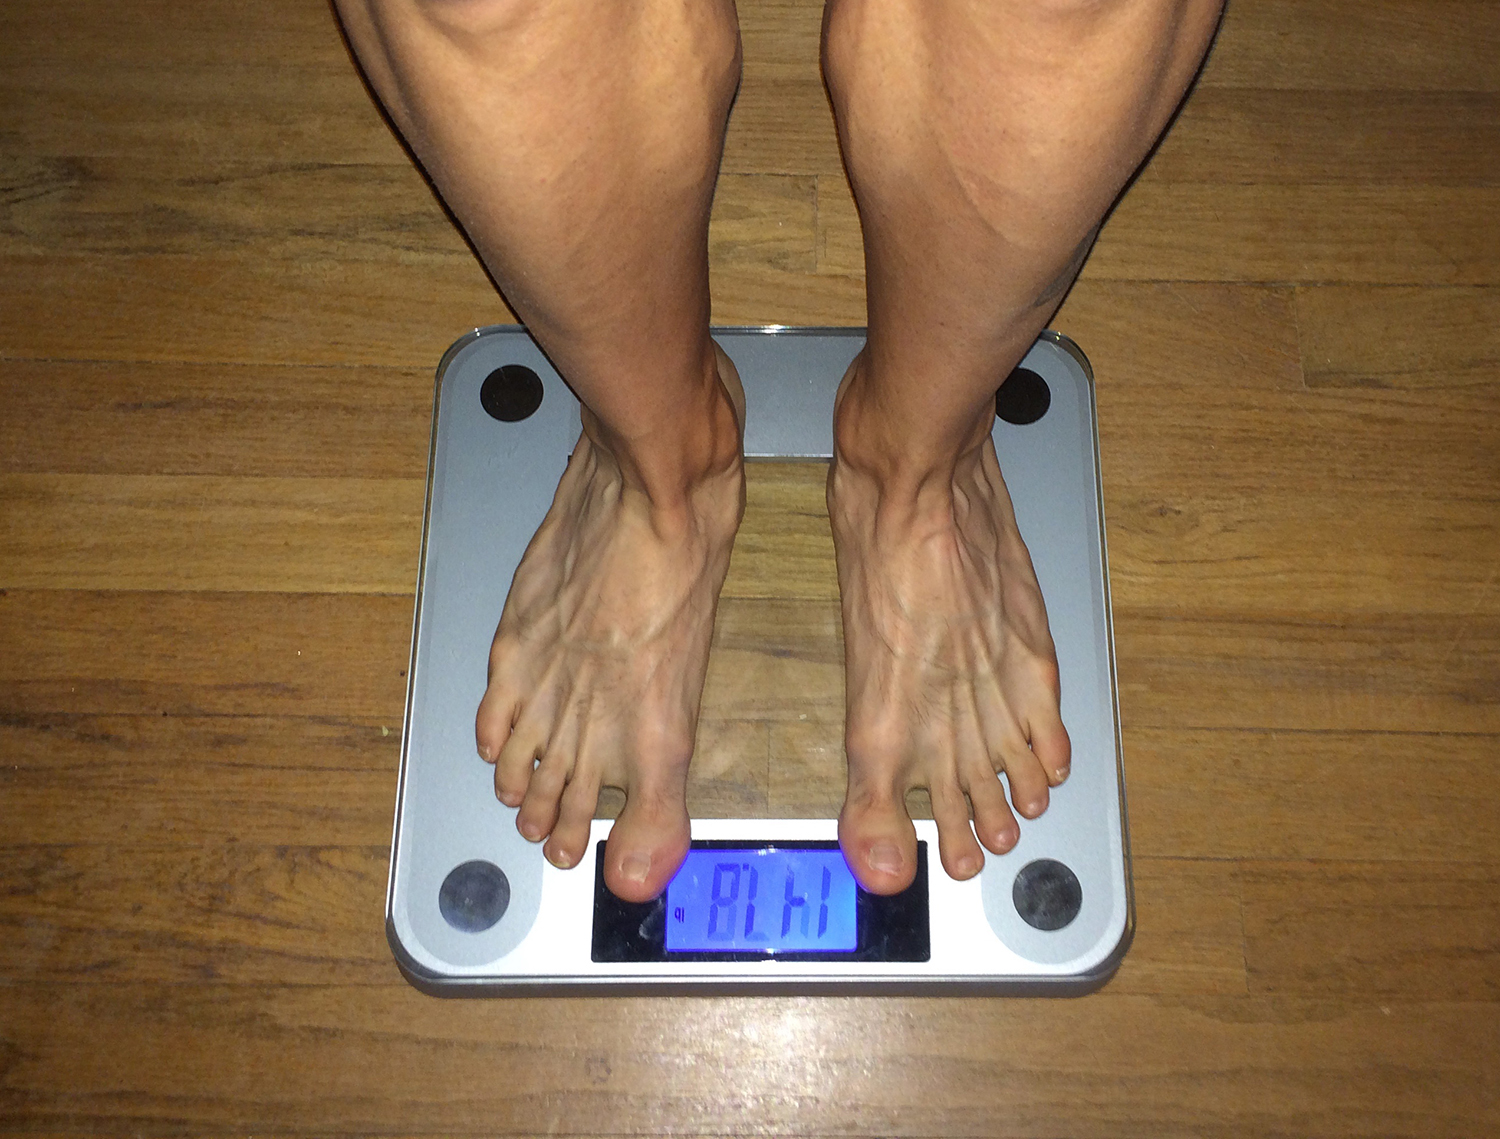 Person Stepping on Weight Scale